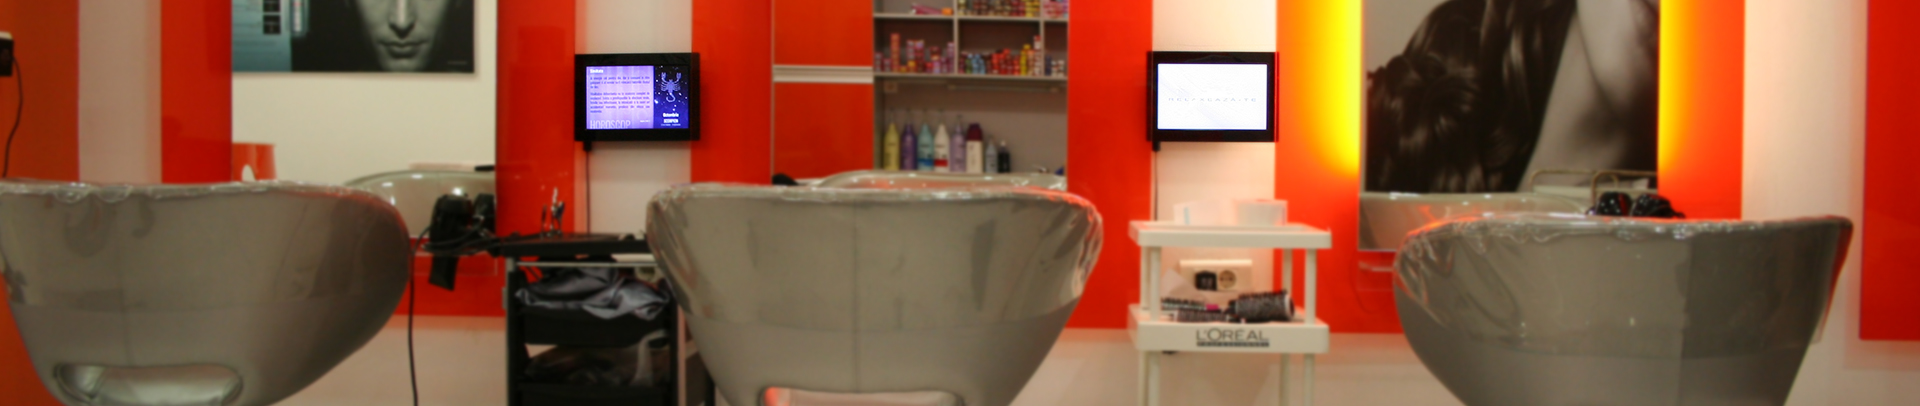 slider-salon-tv